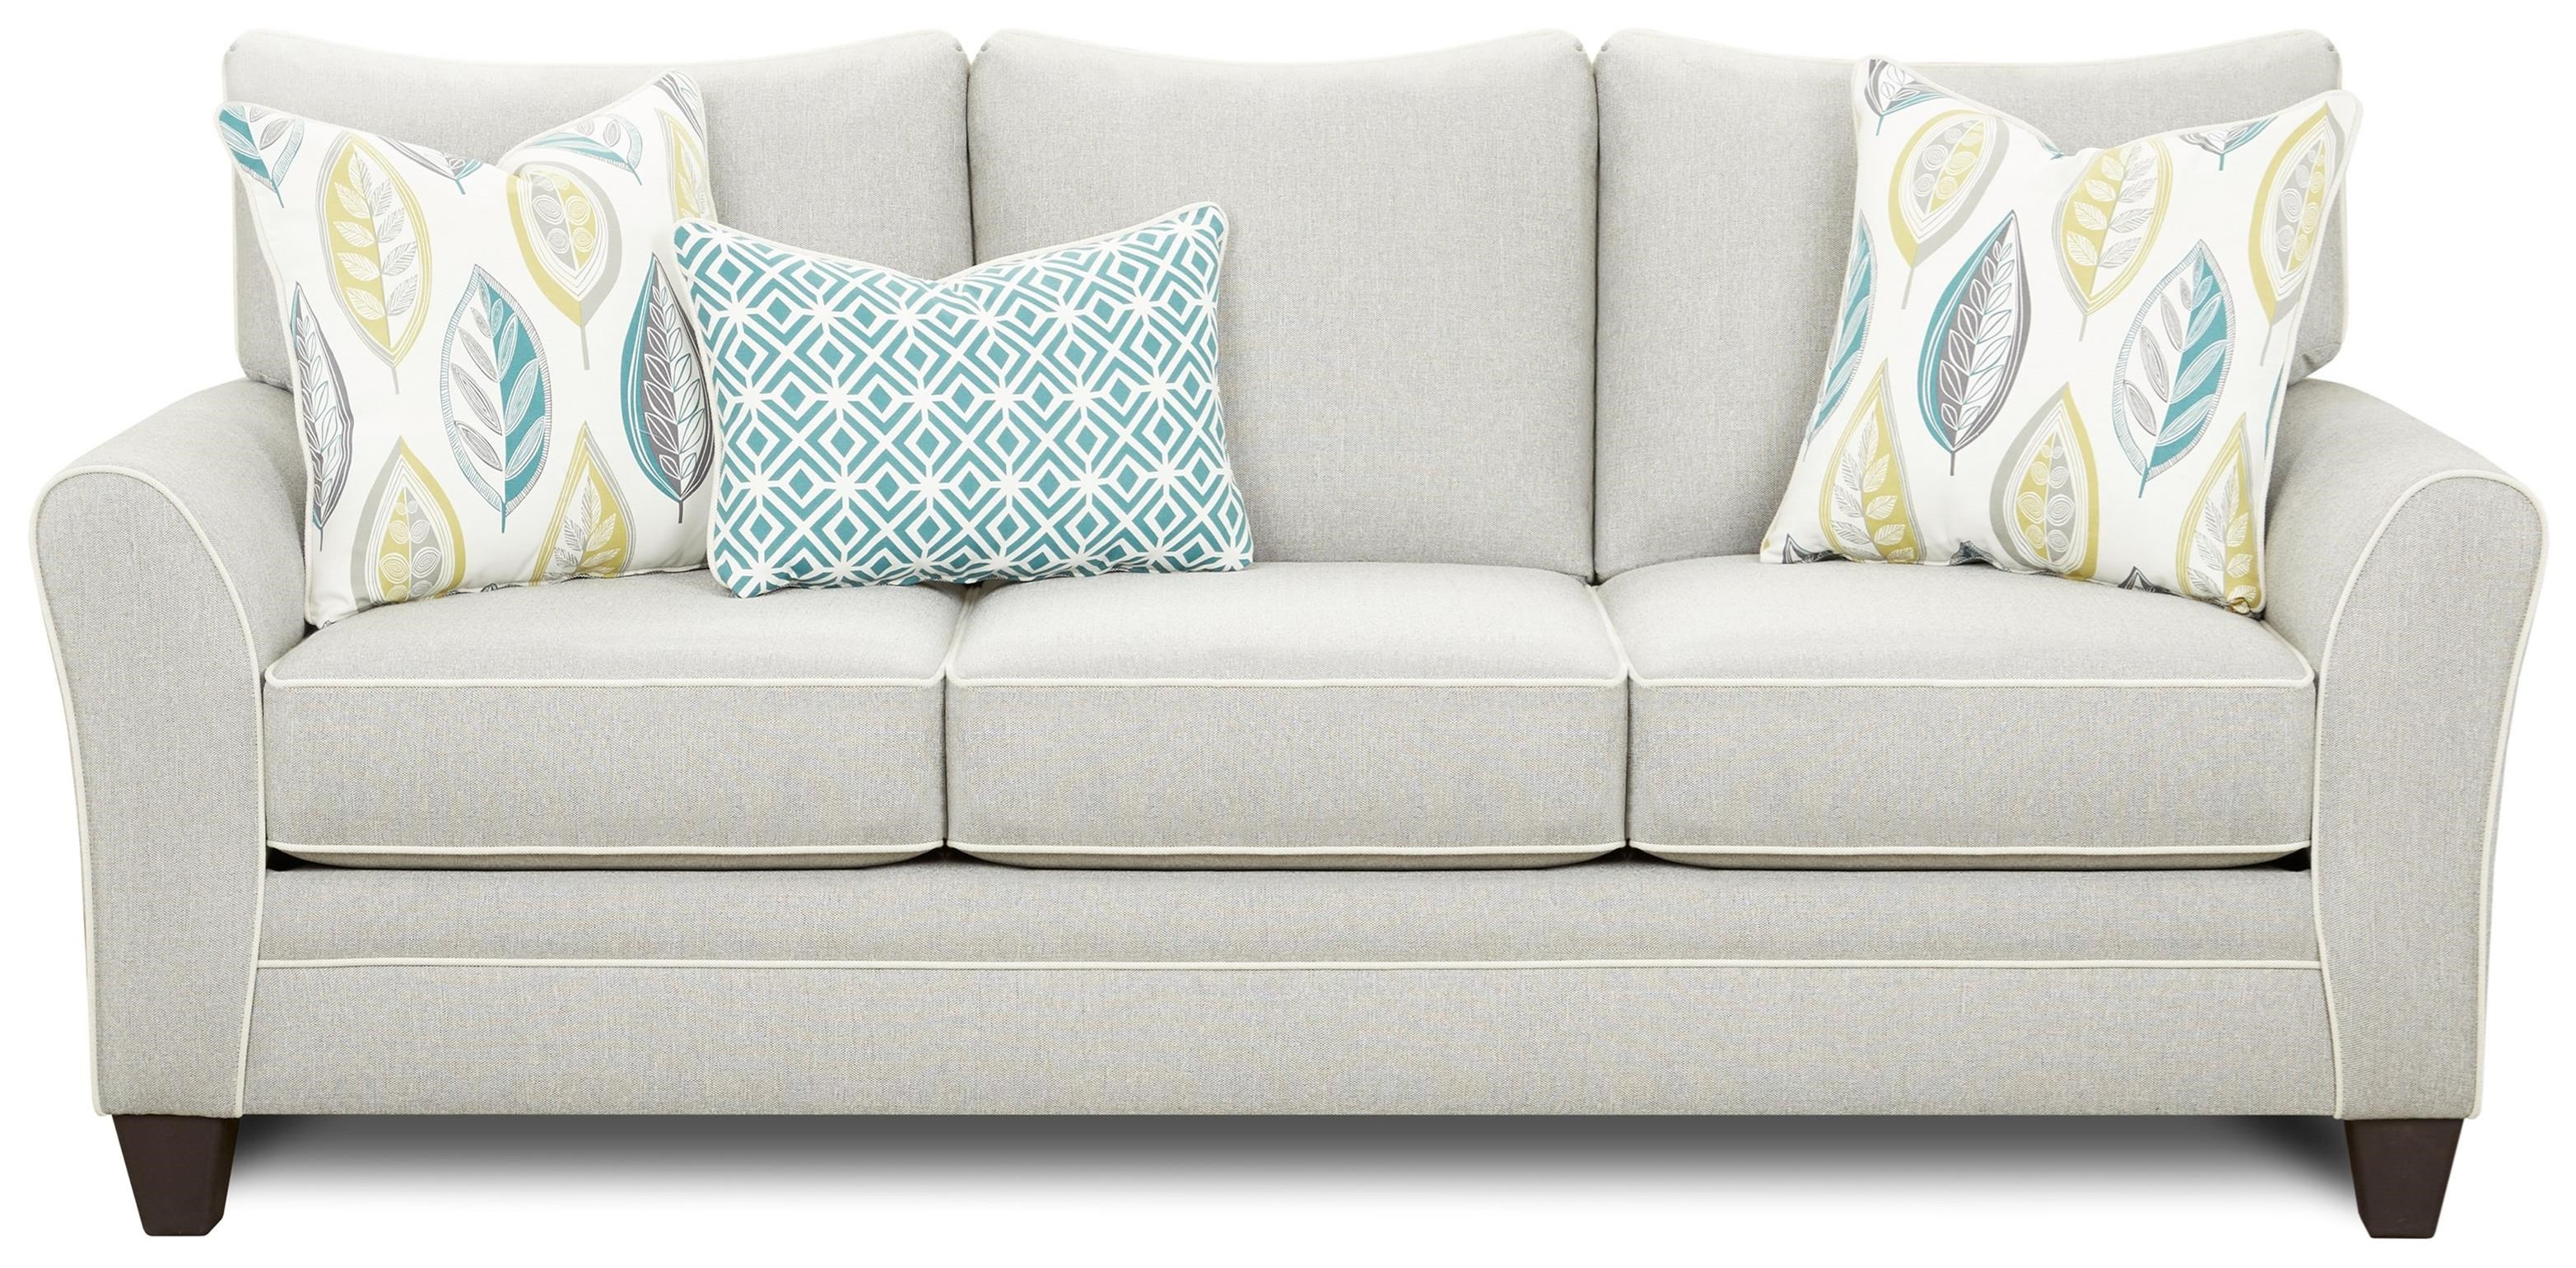 41CW Sofa Sleeper by FN at Lindy's Furniture Company